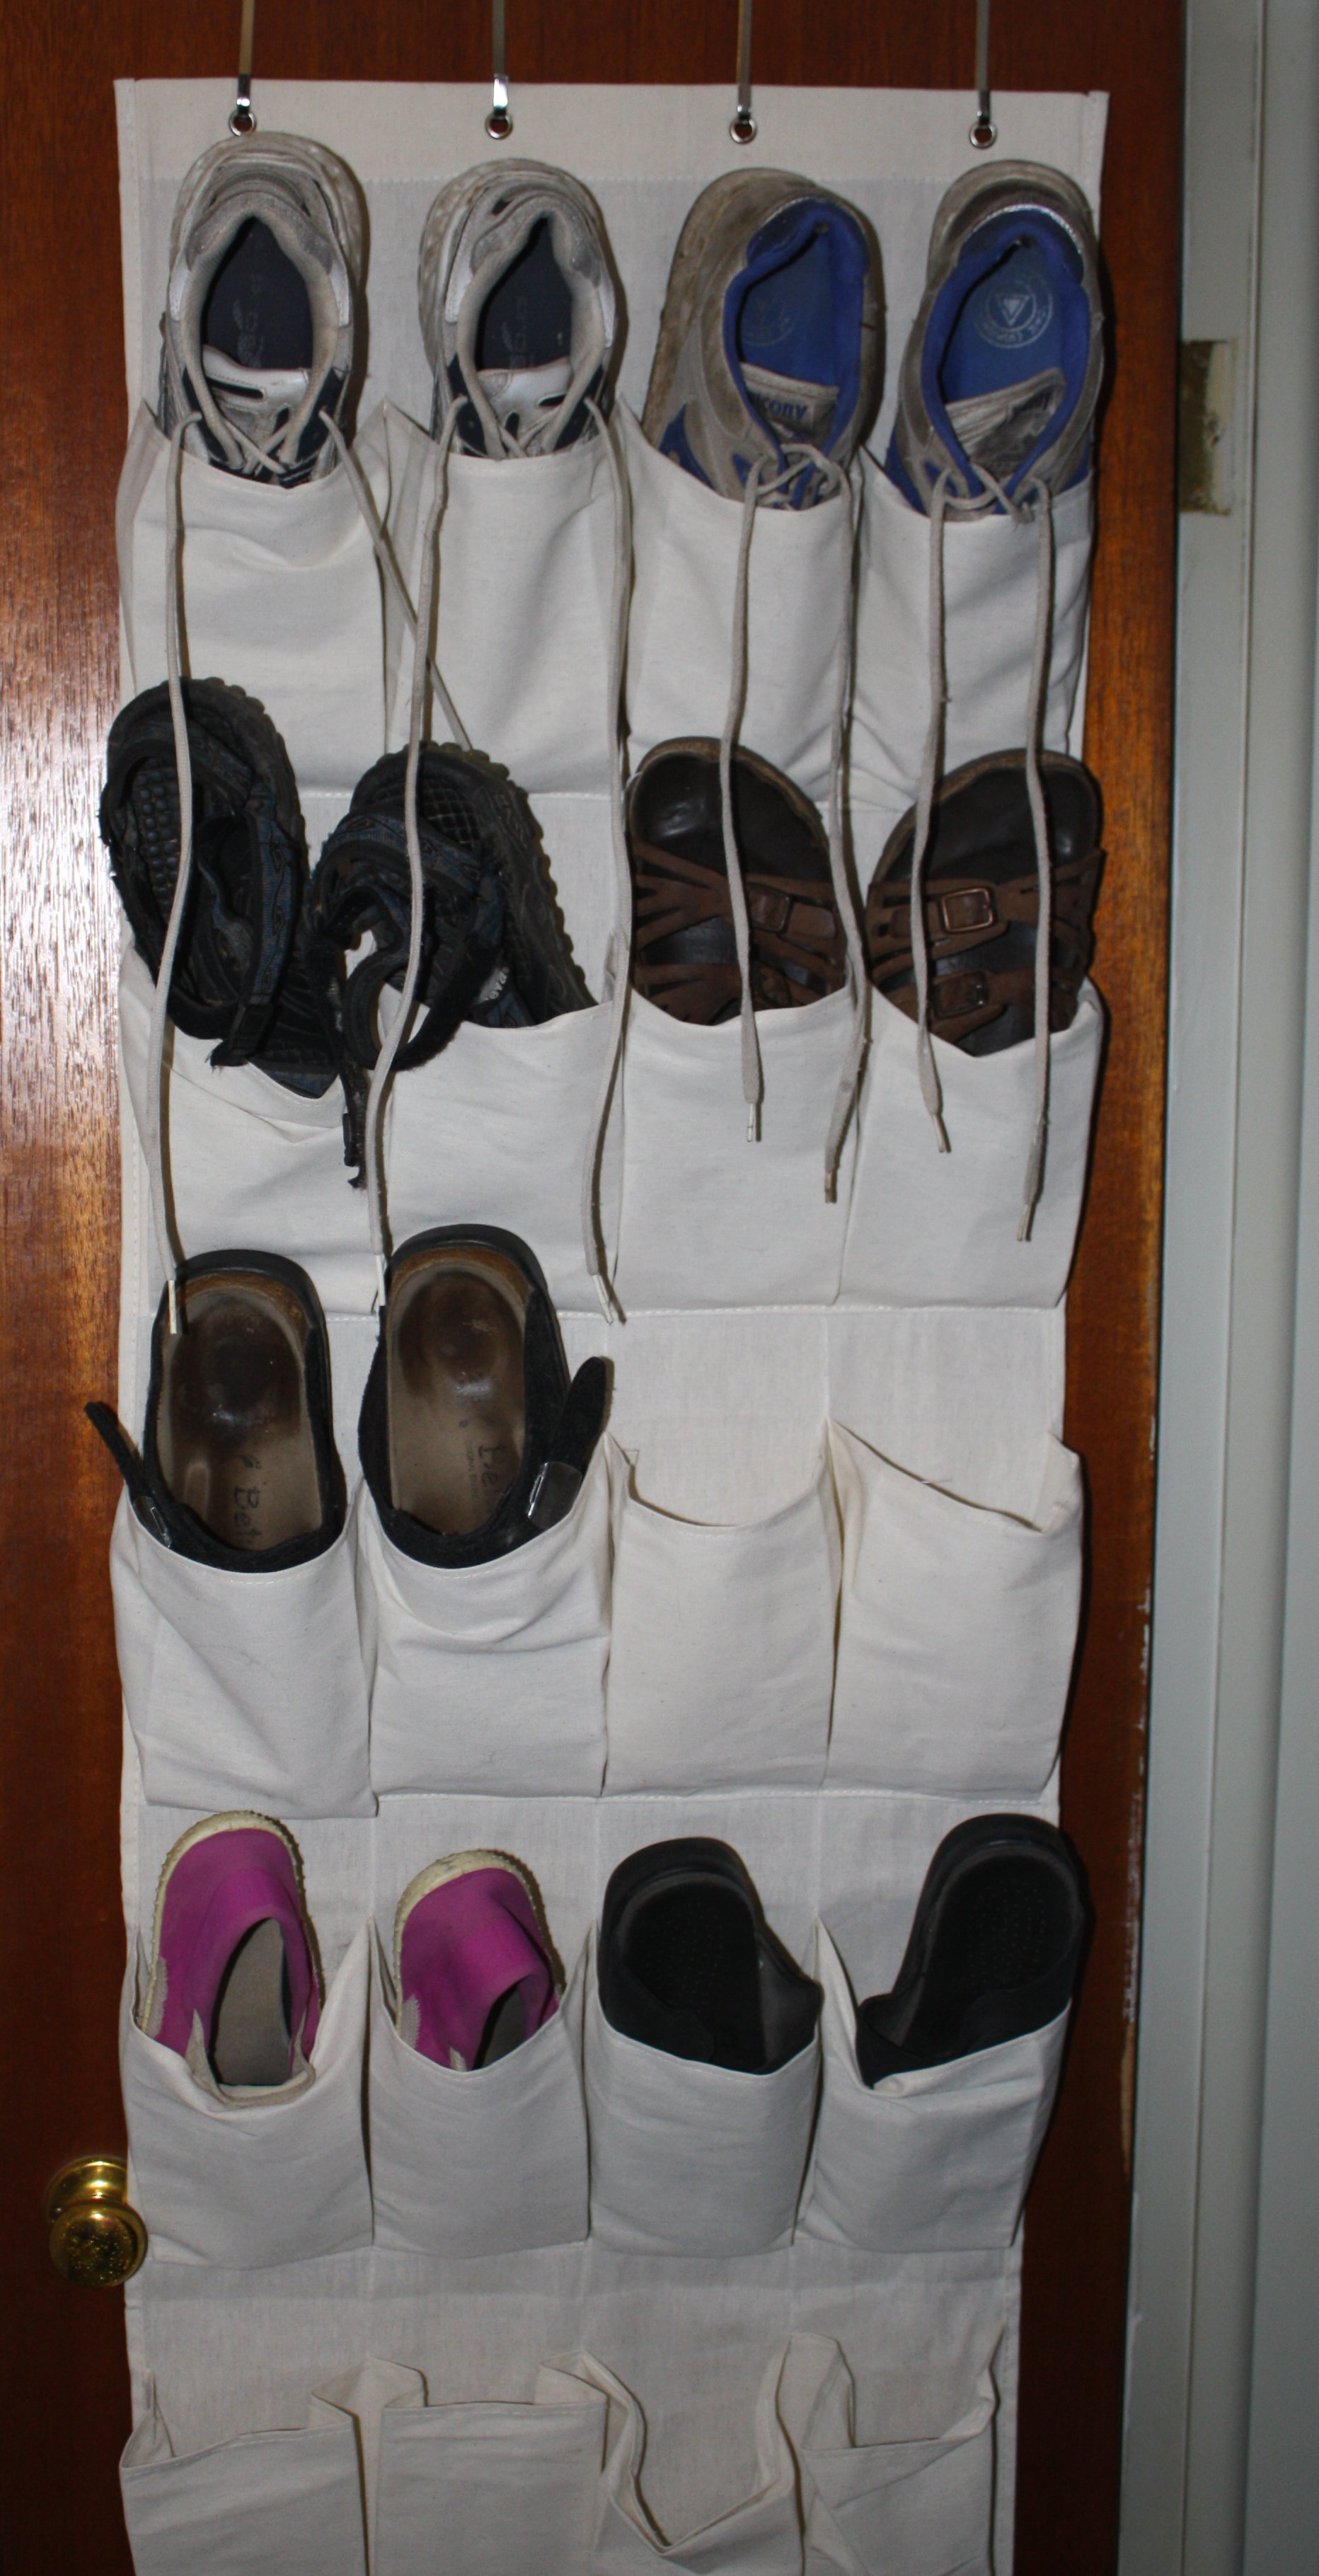 Shoes In Closet Door Rack Picture Free Photograph Photos Public